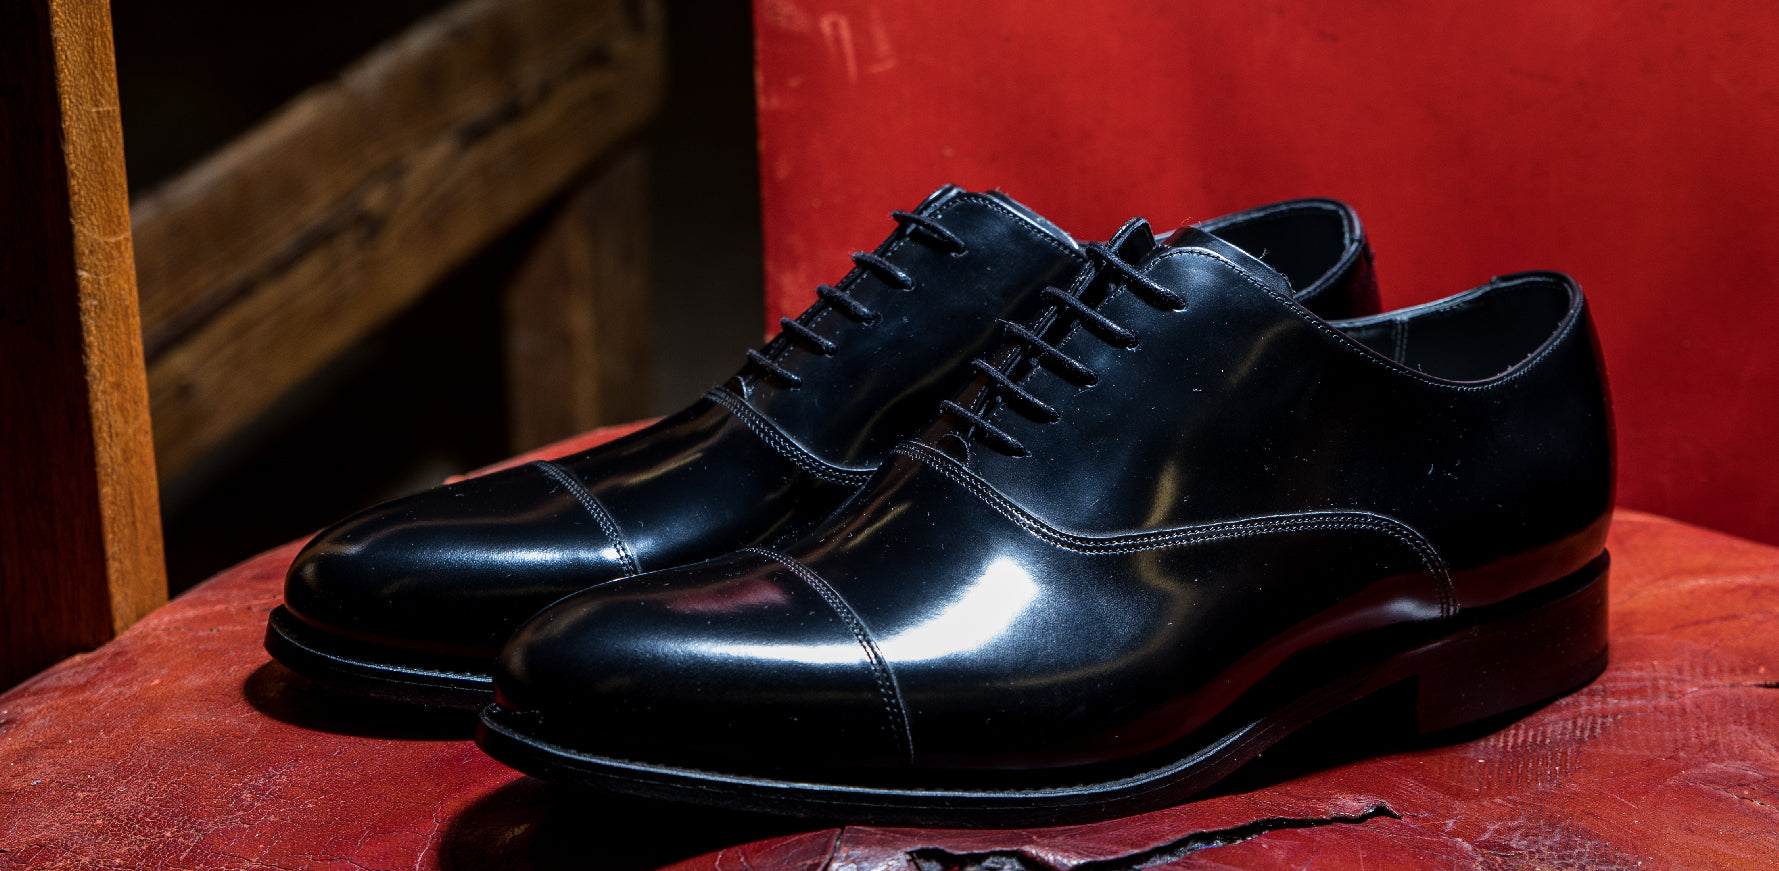 Winsford - Men's Black Leather Oxford Shoes By Barker